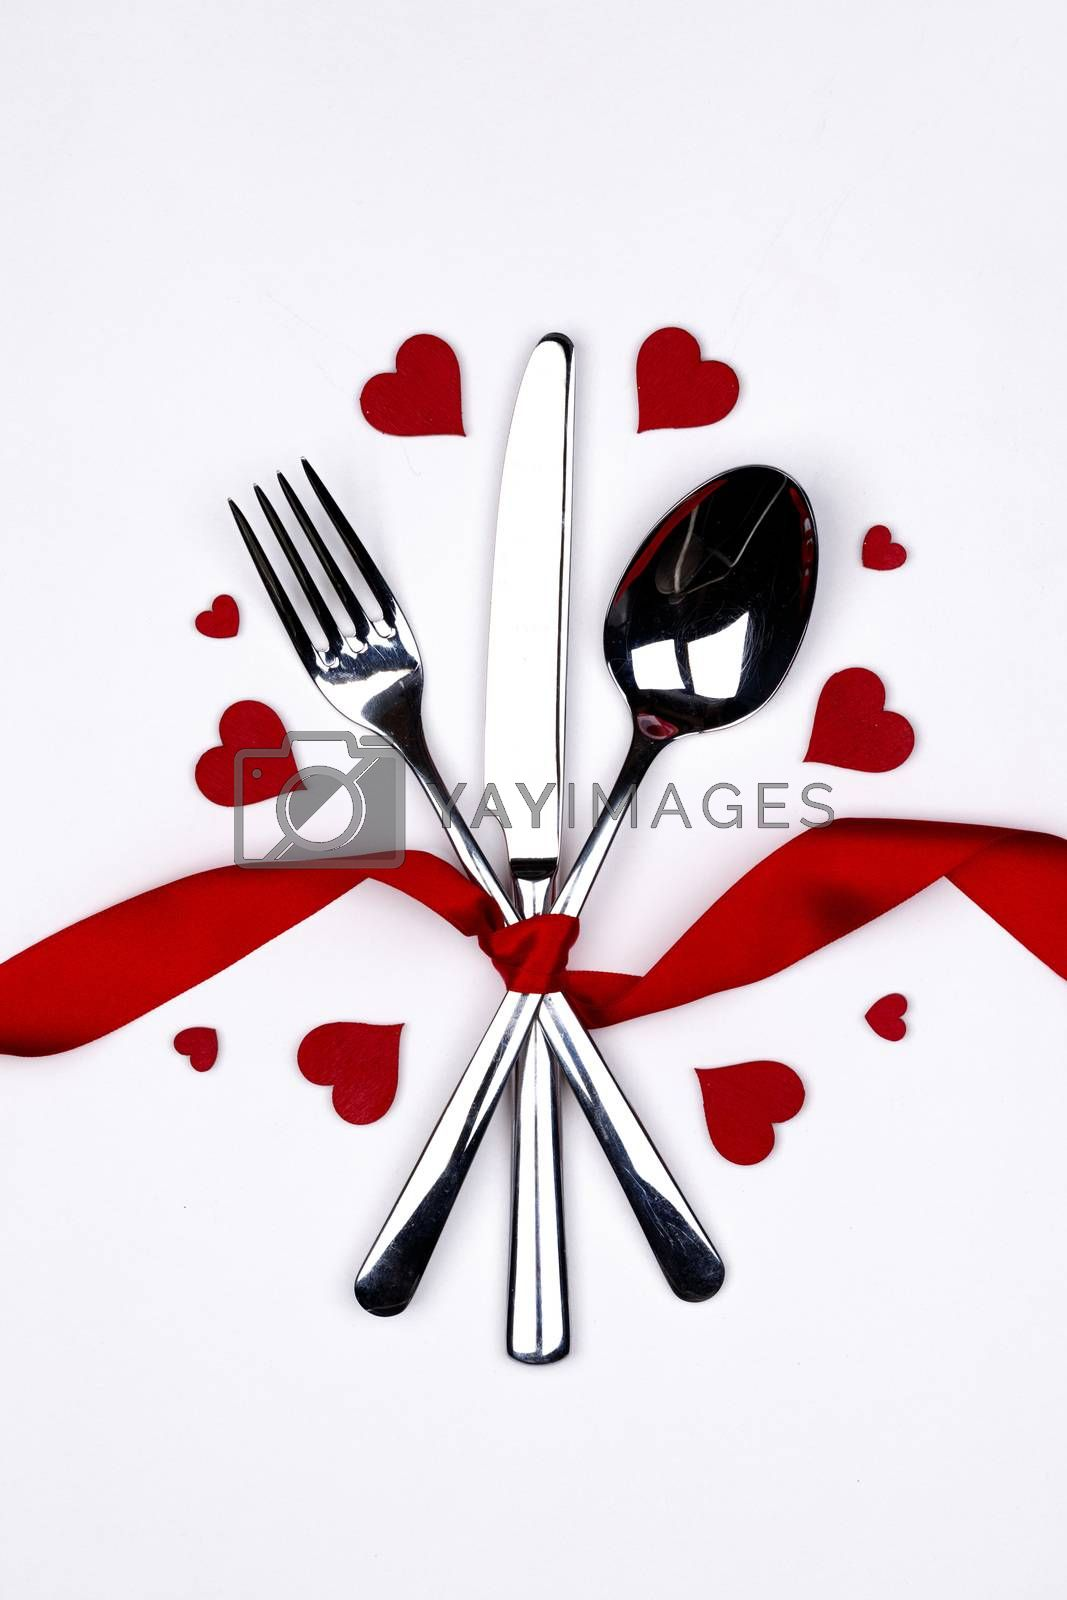 Cutlery set tied with silk ribbon and hearts on white background Valentine day dinner concept